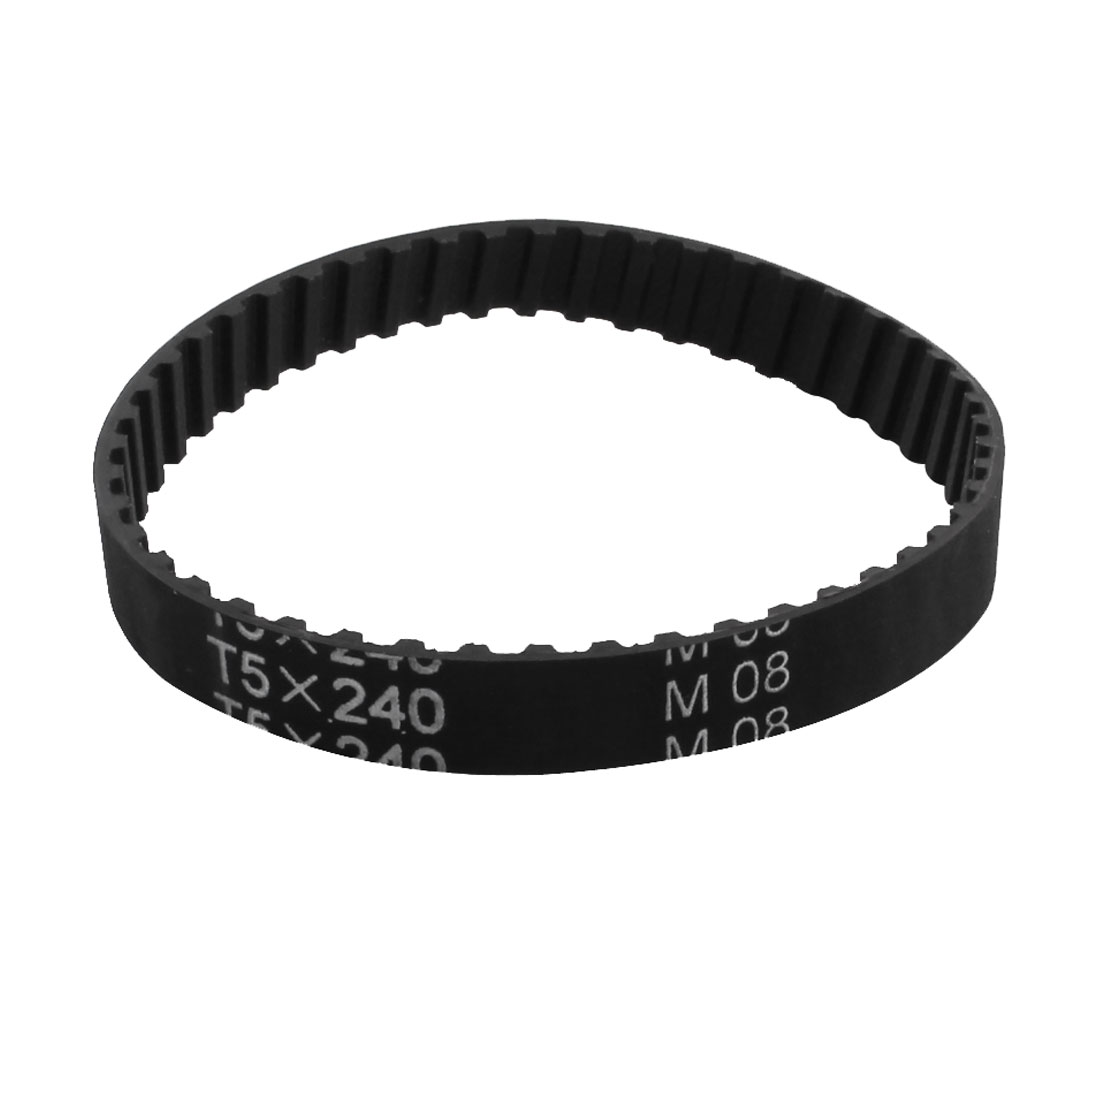 T5 x 240 48 Teeth 10mm Width Black 3D Printer Industrial Groove Synchronous Timing Belt 240mm Girth